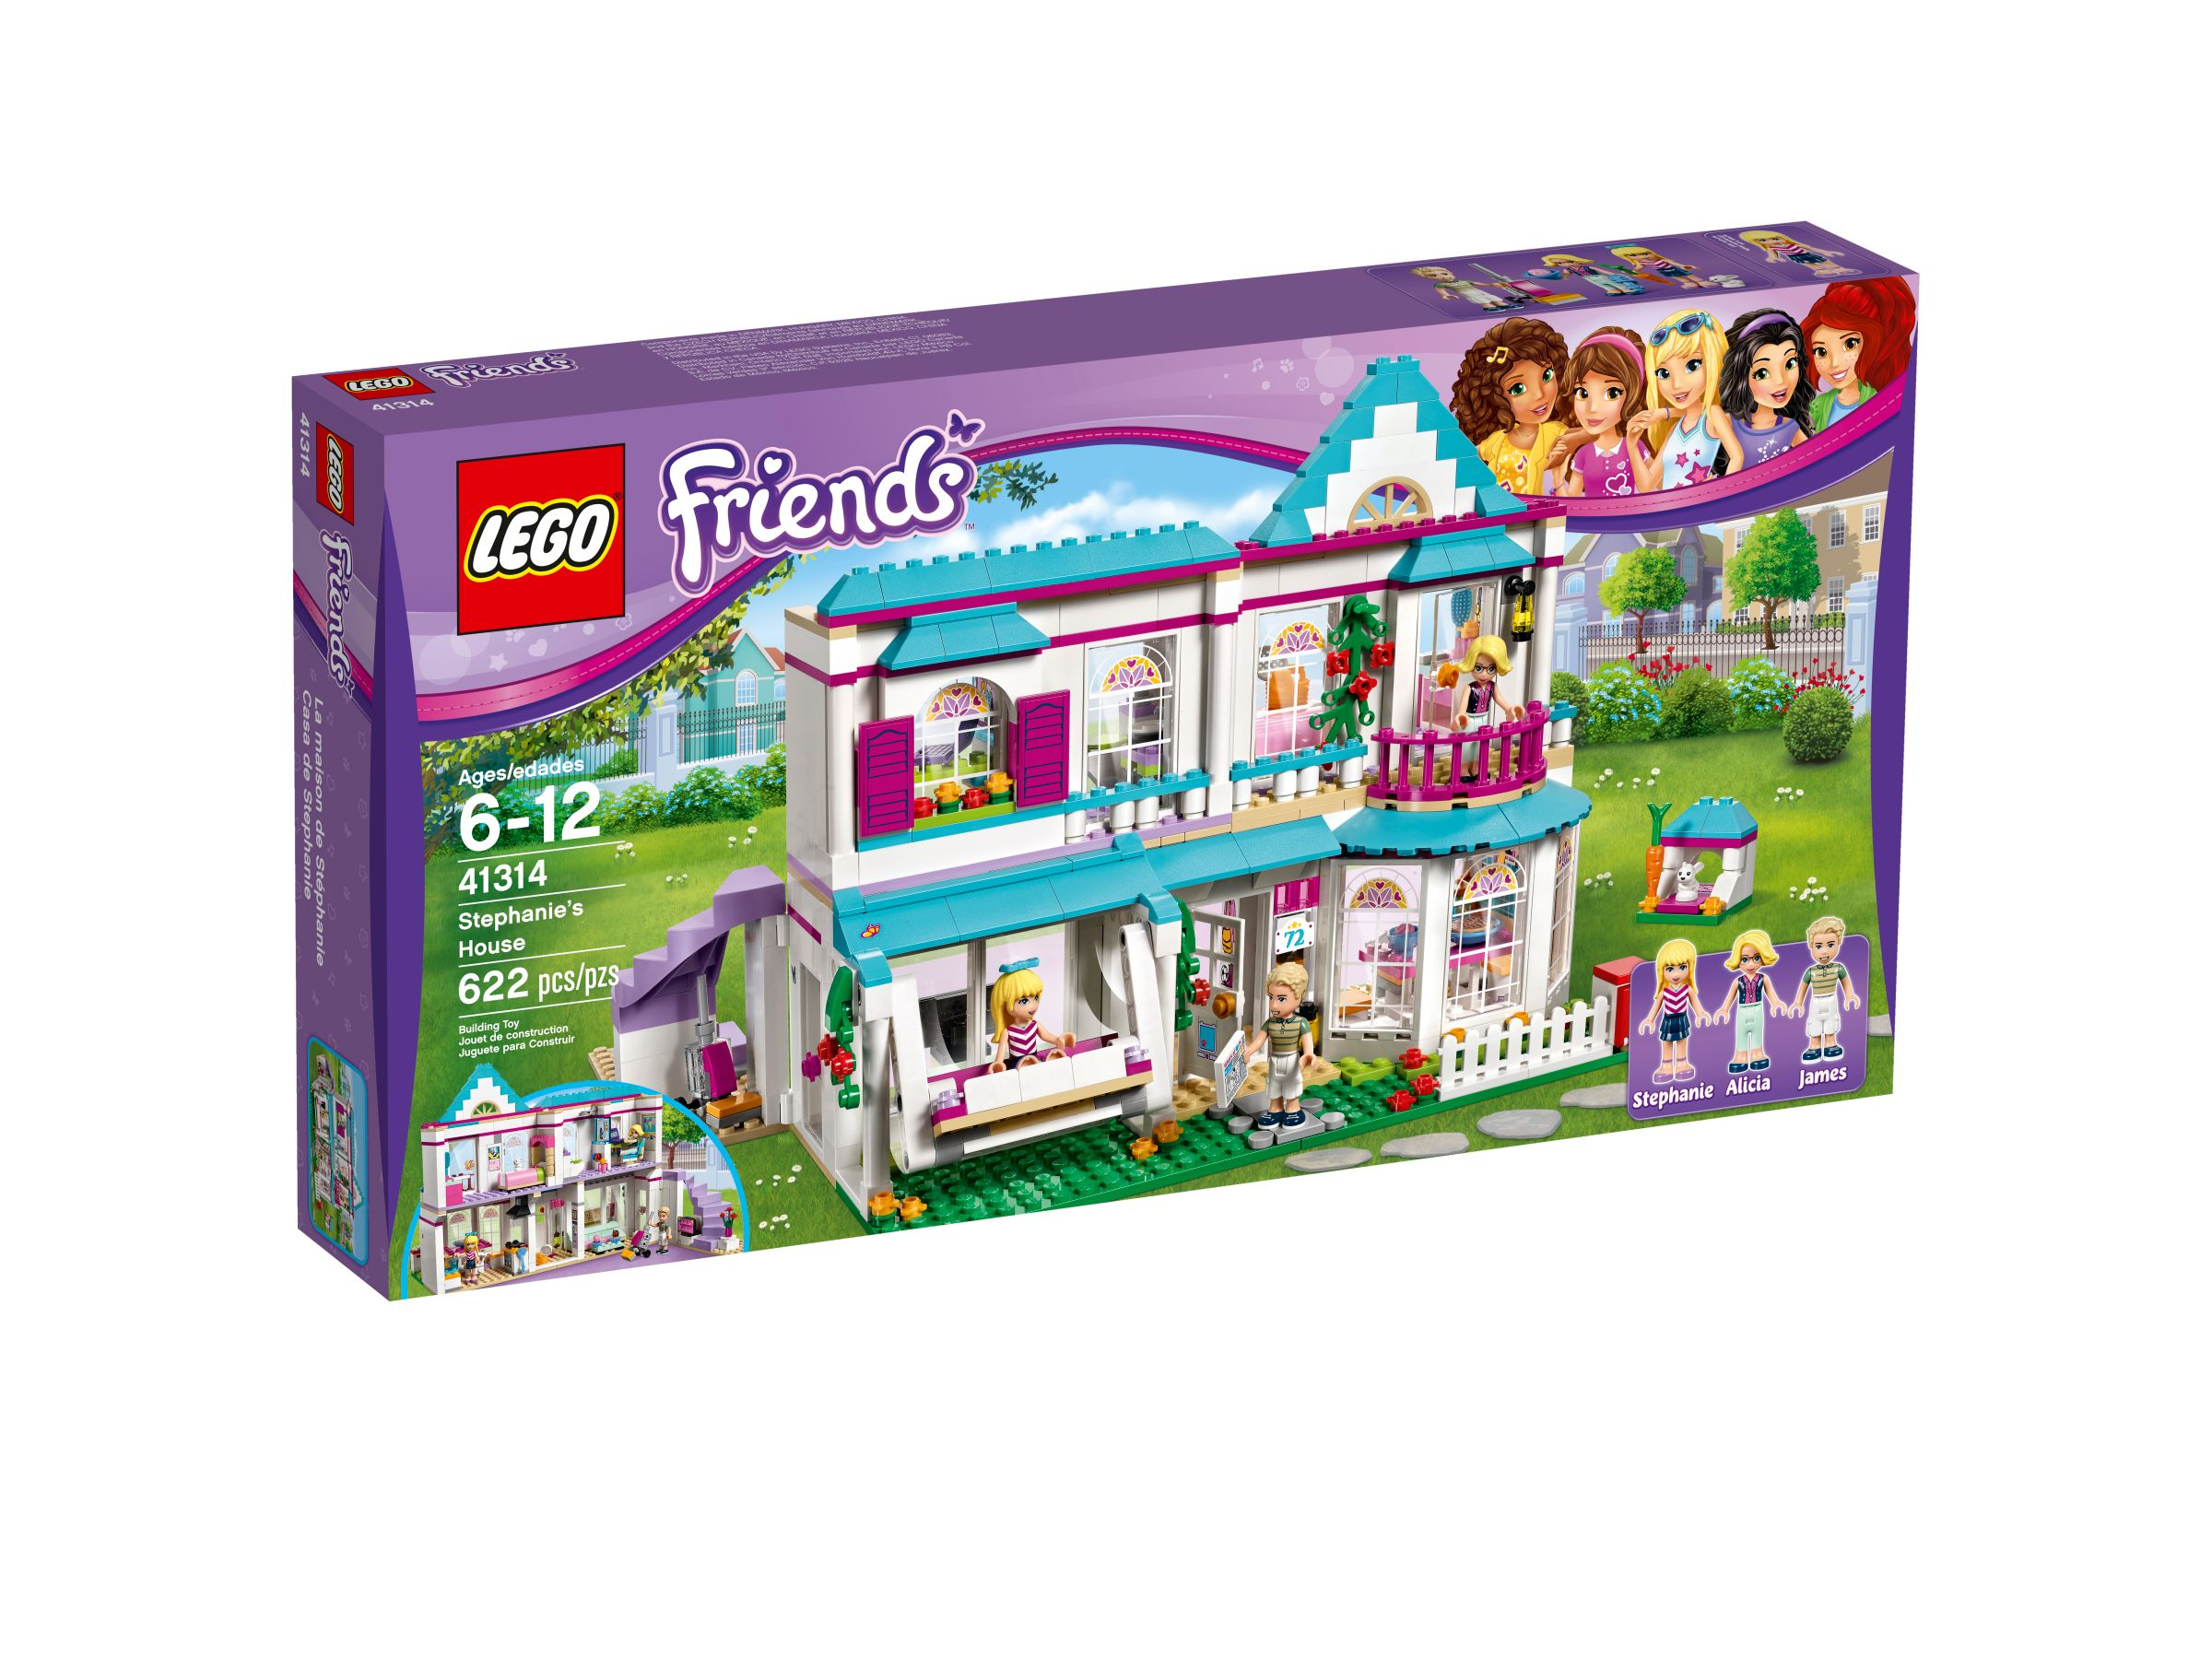 lego 41314 stephanies haus friends 2017 ab 49 00 30 gespart stephanie 39 s house brickmerge. Black Bedroom Furniture Sets. Home Design Ideas